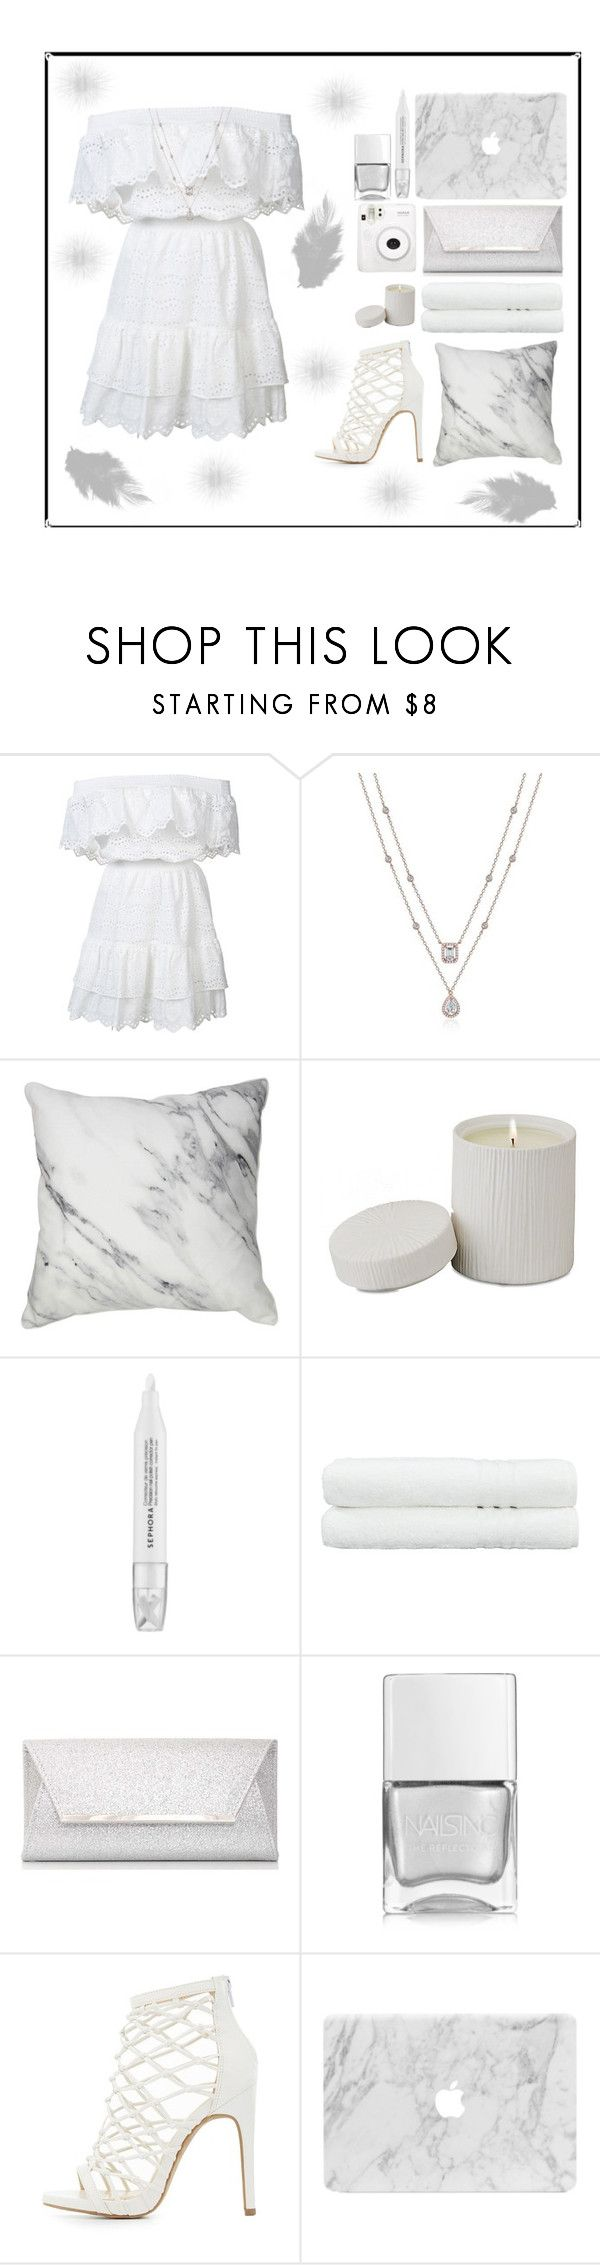 """""""On Angel's Wings"""" by amber-mistry ❤ liked on Polyvore featuring LoveShackFancy, Global Views, Sephora Collection, Linum Home Textiles, Dorothy Perkins, Nails Inc., Charlotte Russe and Fuji"""